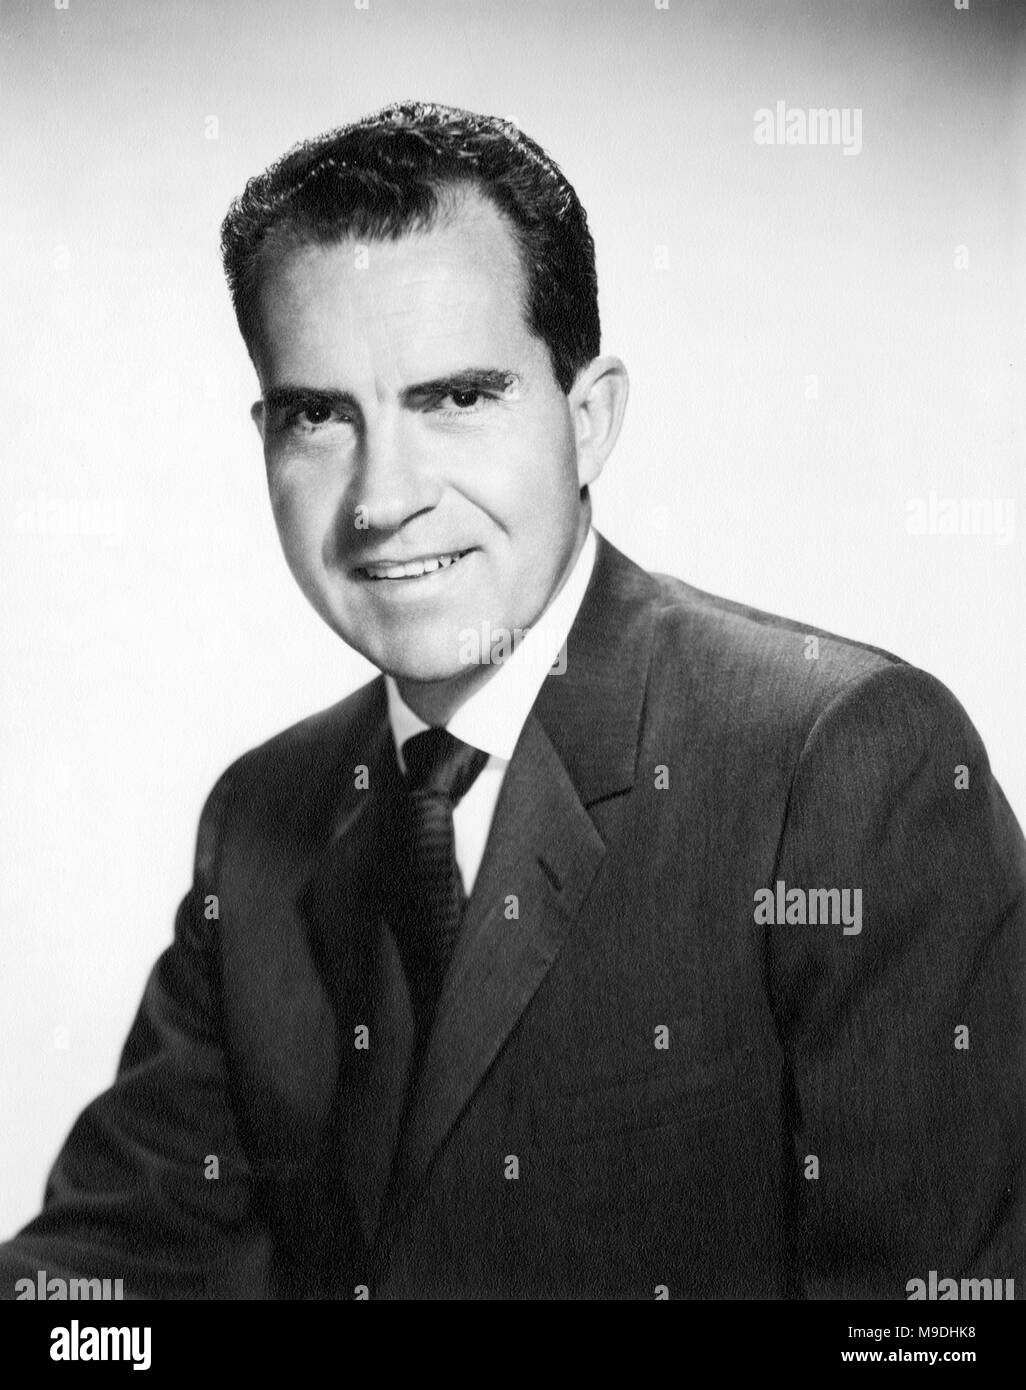 Richard M. Nixon, 36th Vice President of the United States from 1953-1961. - Stock Image